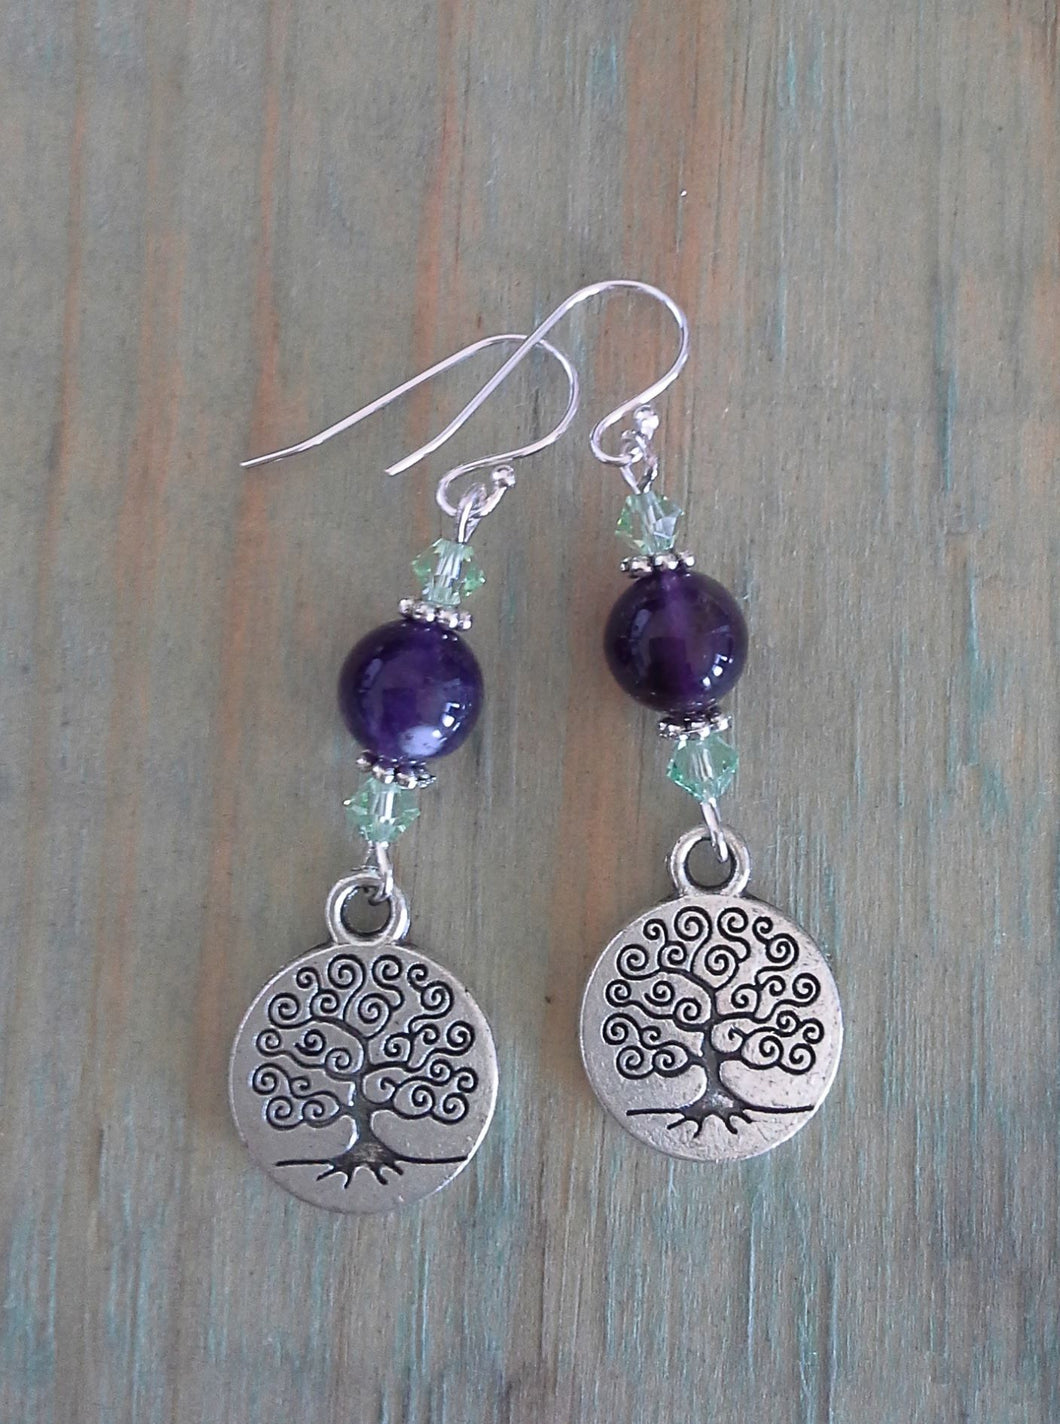 Tree of Life Dangle Earrings - Amethyst with Green Swarovski Crystals